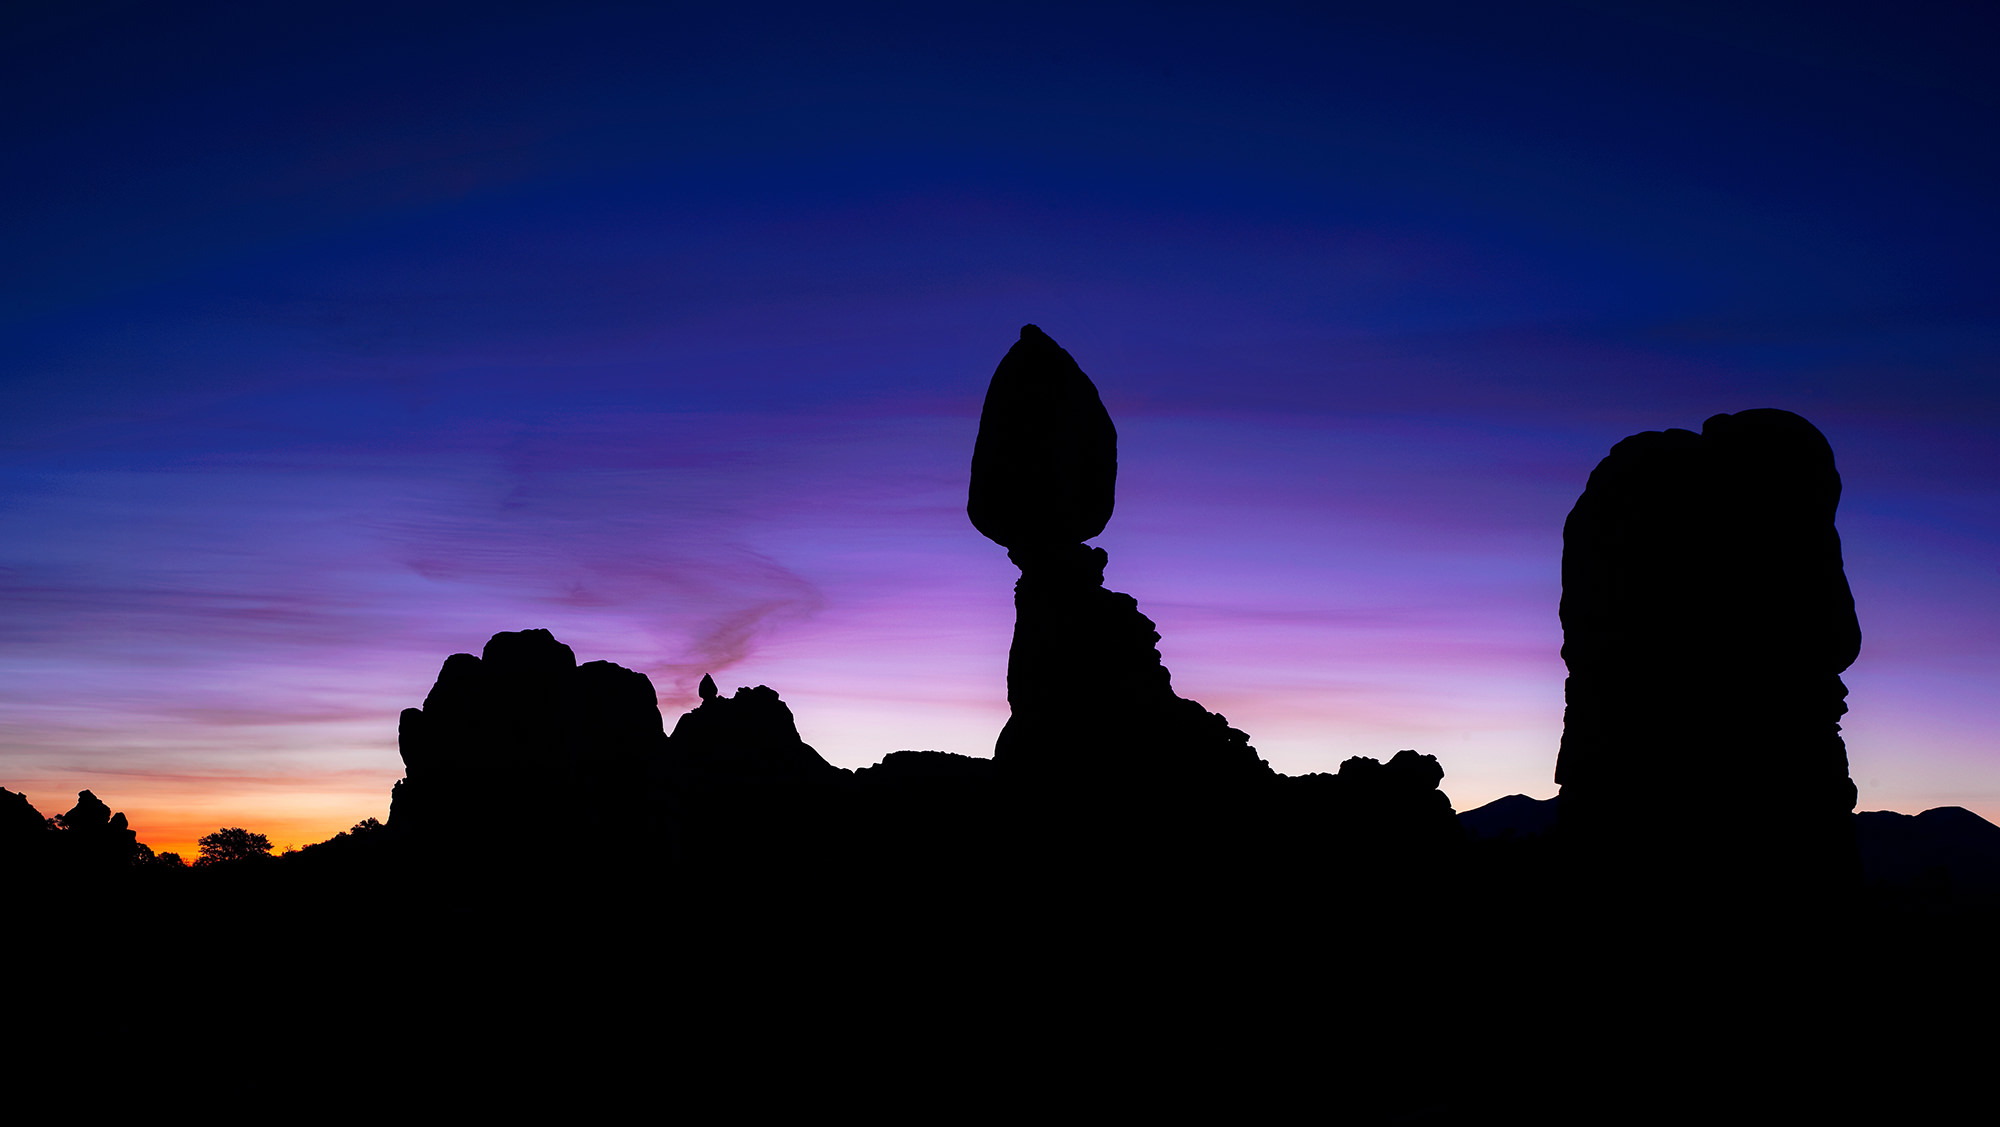 BALANCED ROCK - Arches National Park, UT